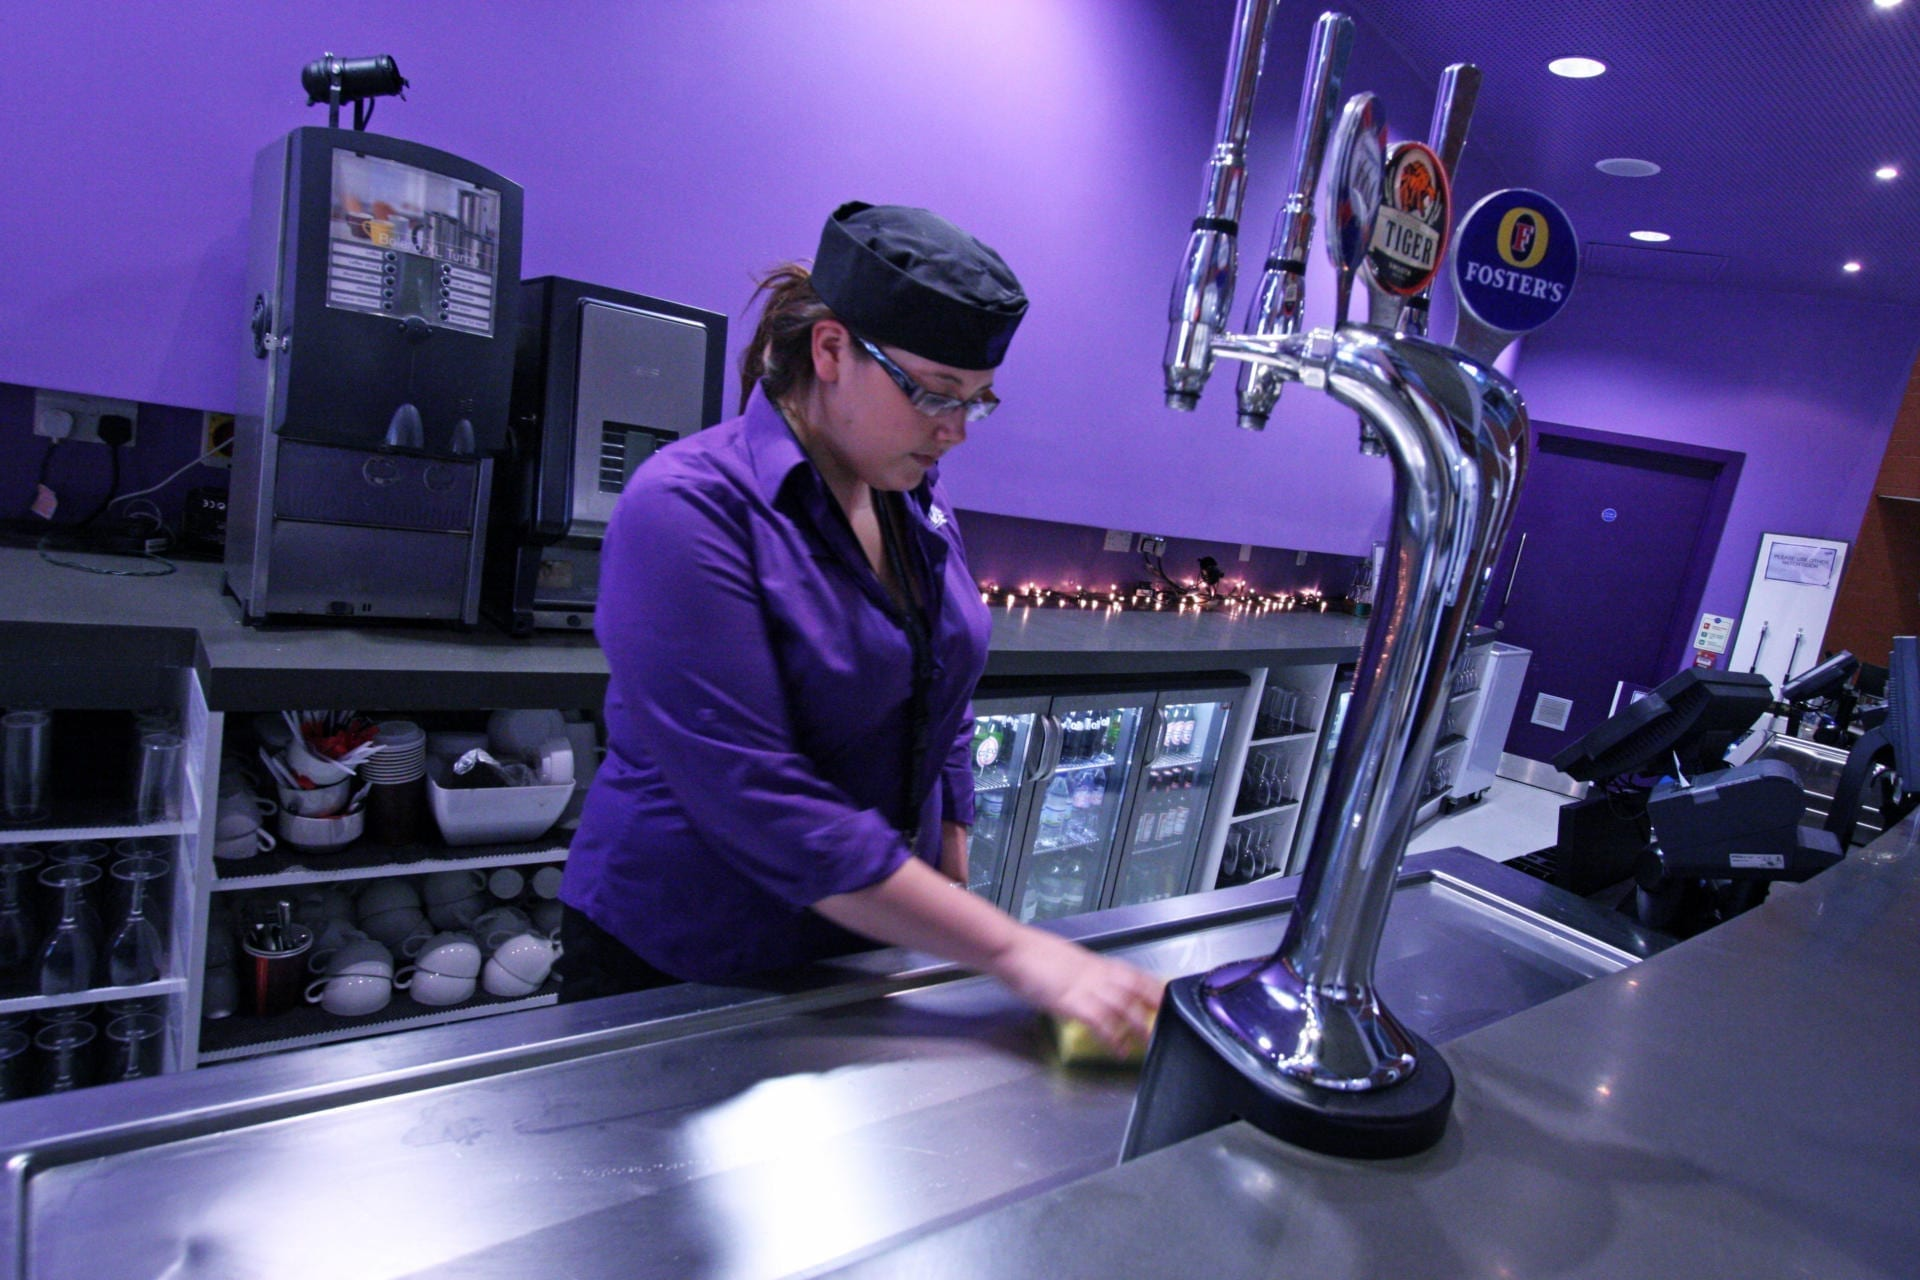 Leicester_City_Council_Leicester_Cafe_Bar_Front_of_house_Servery_Food_Display_spacecatering_3